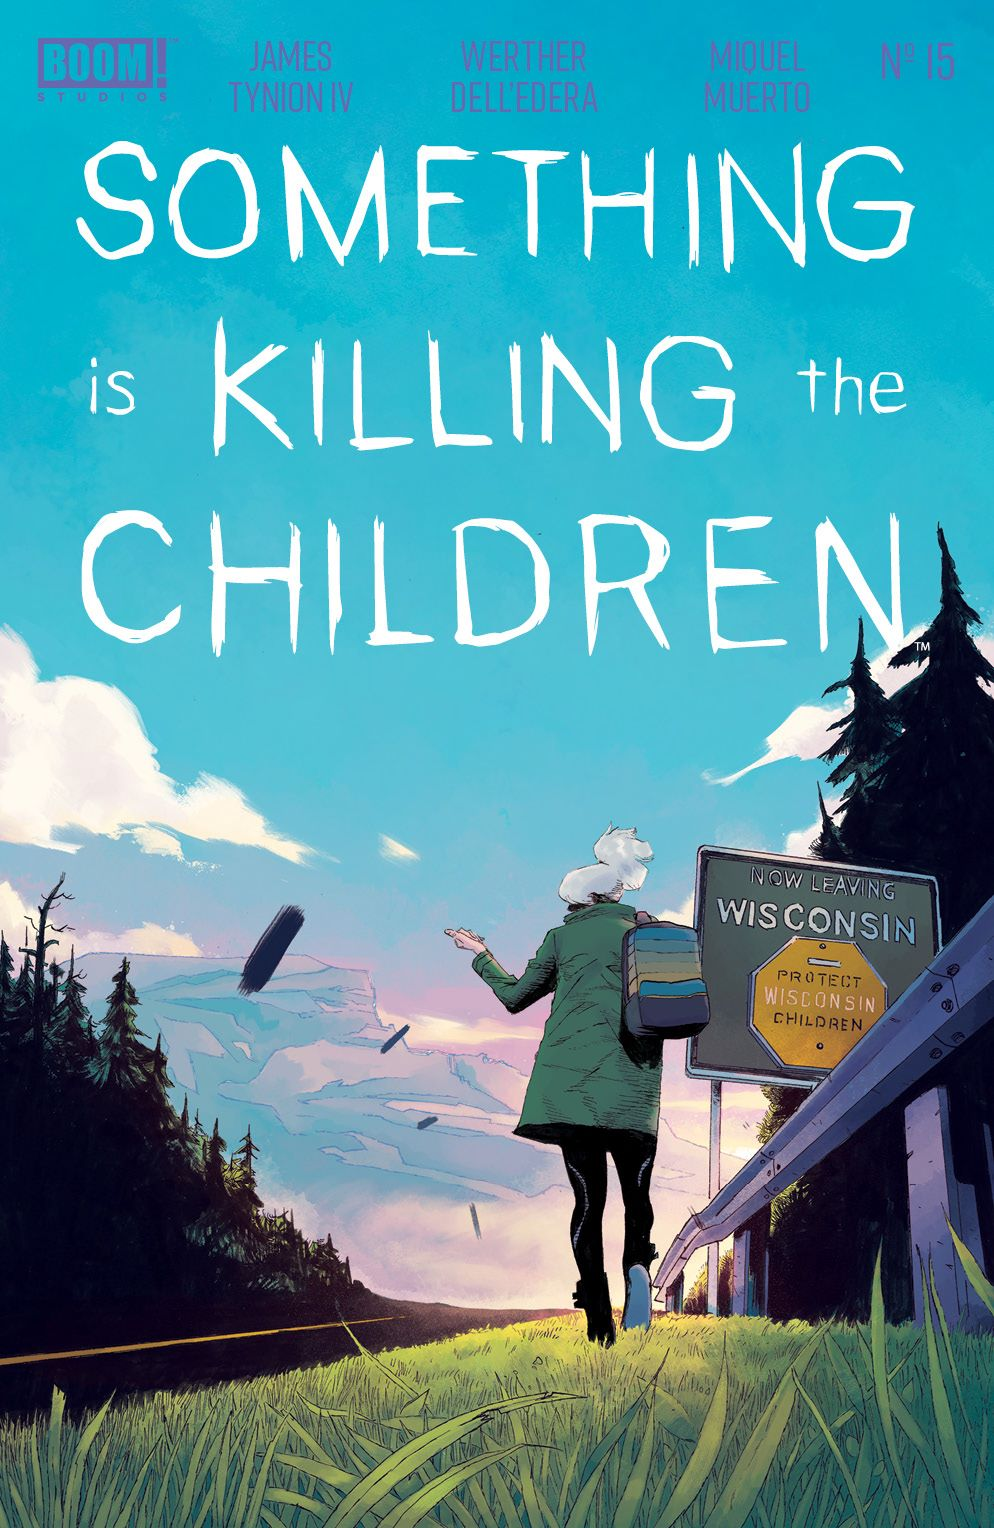 SomethingKillingChildren_015_Cover_A_Main ComicList Previews: SOMETHING IS KILLING THE CHILDREN #15